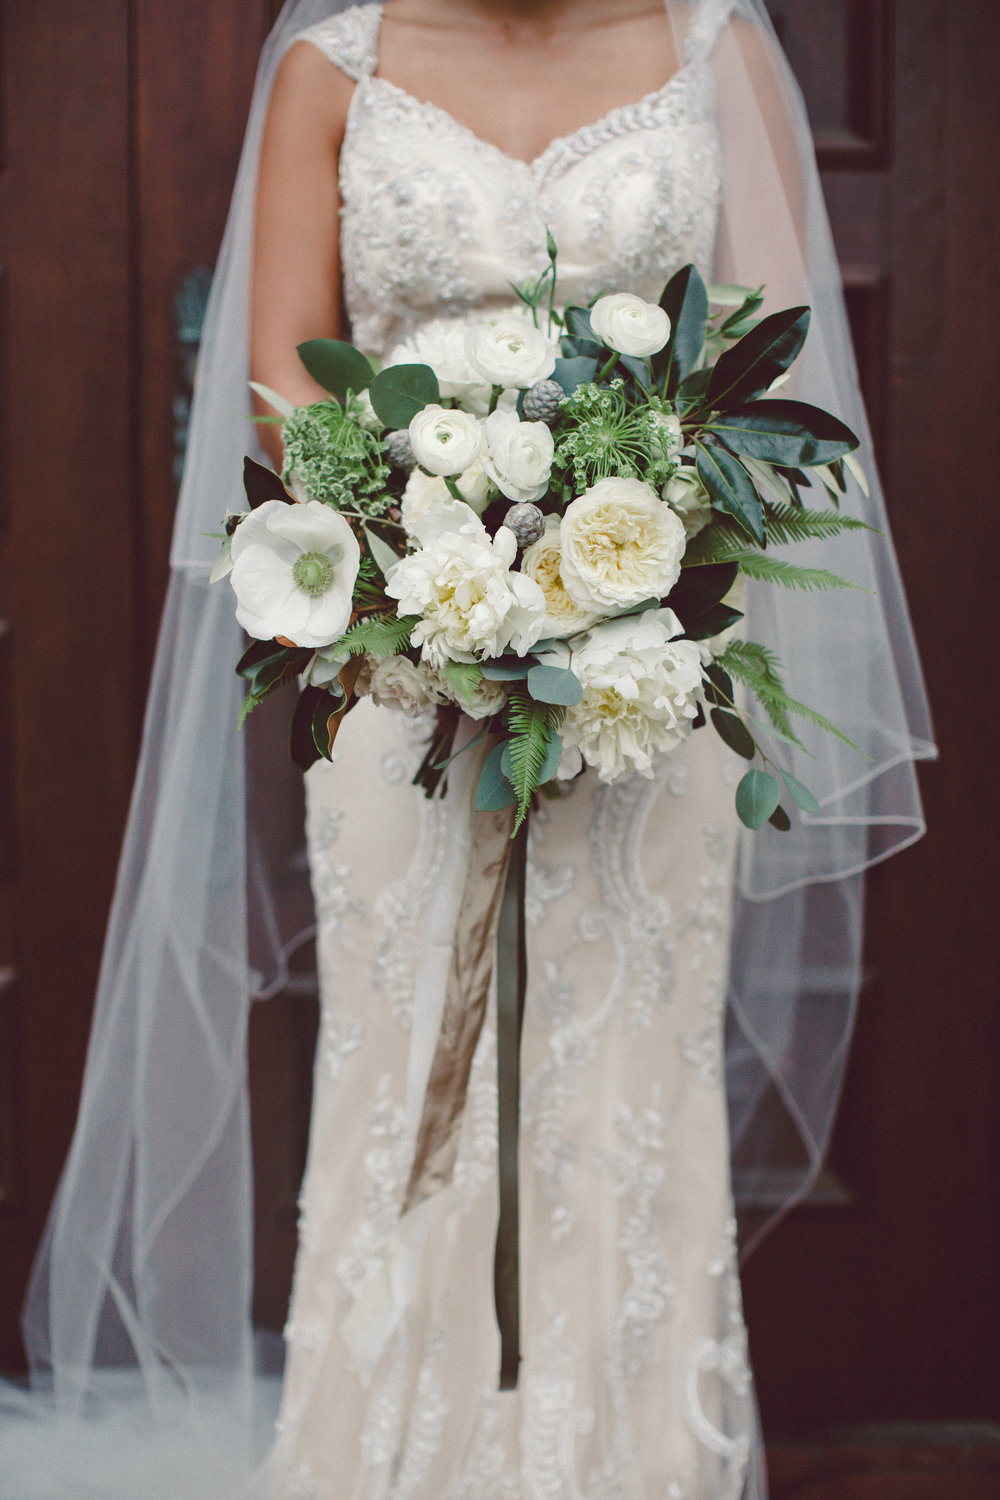 Peony, anemone, magnolia bridal bouquet with trailing silk ribbons by Venn Floral. photo by Lilly Red.